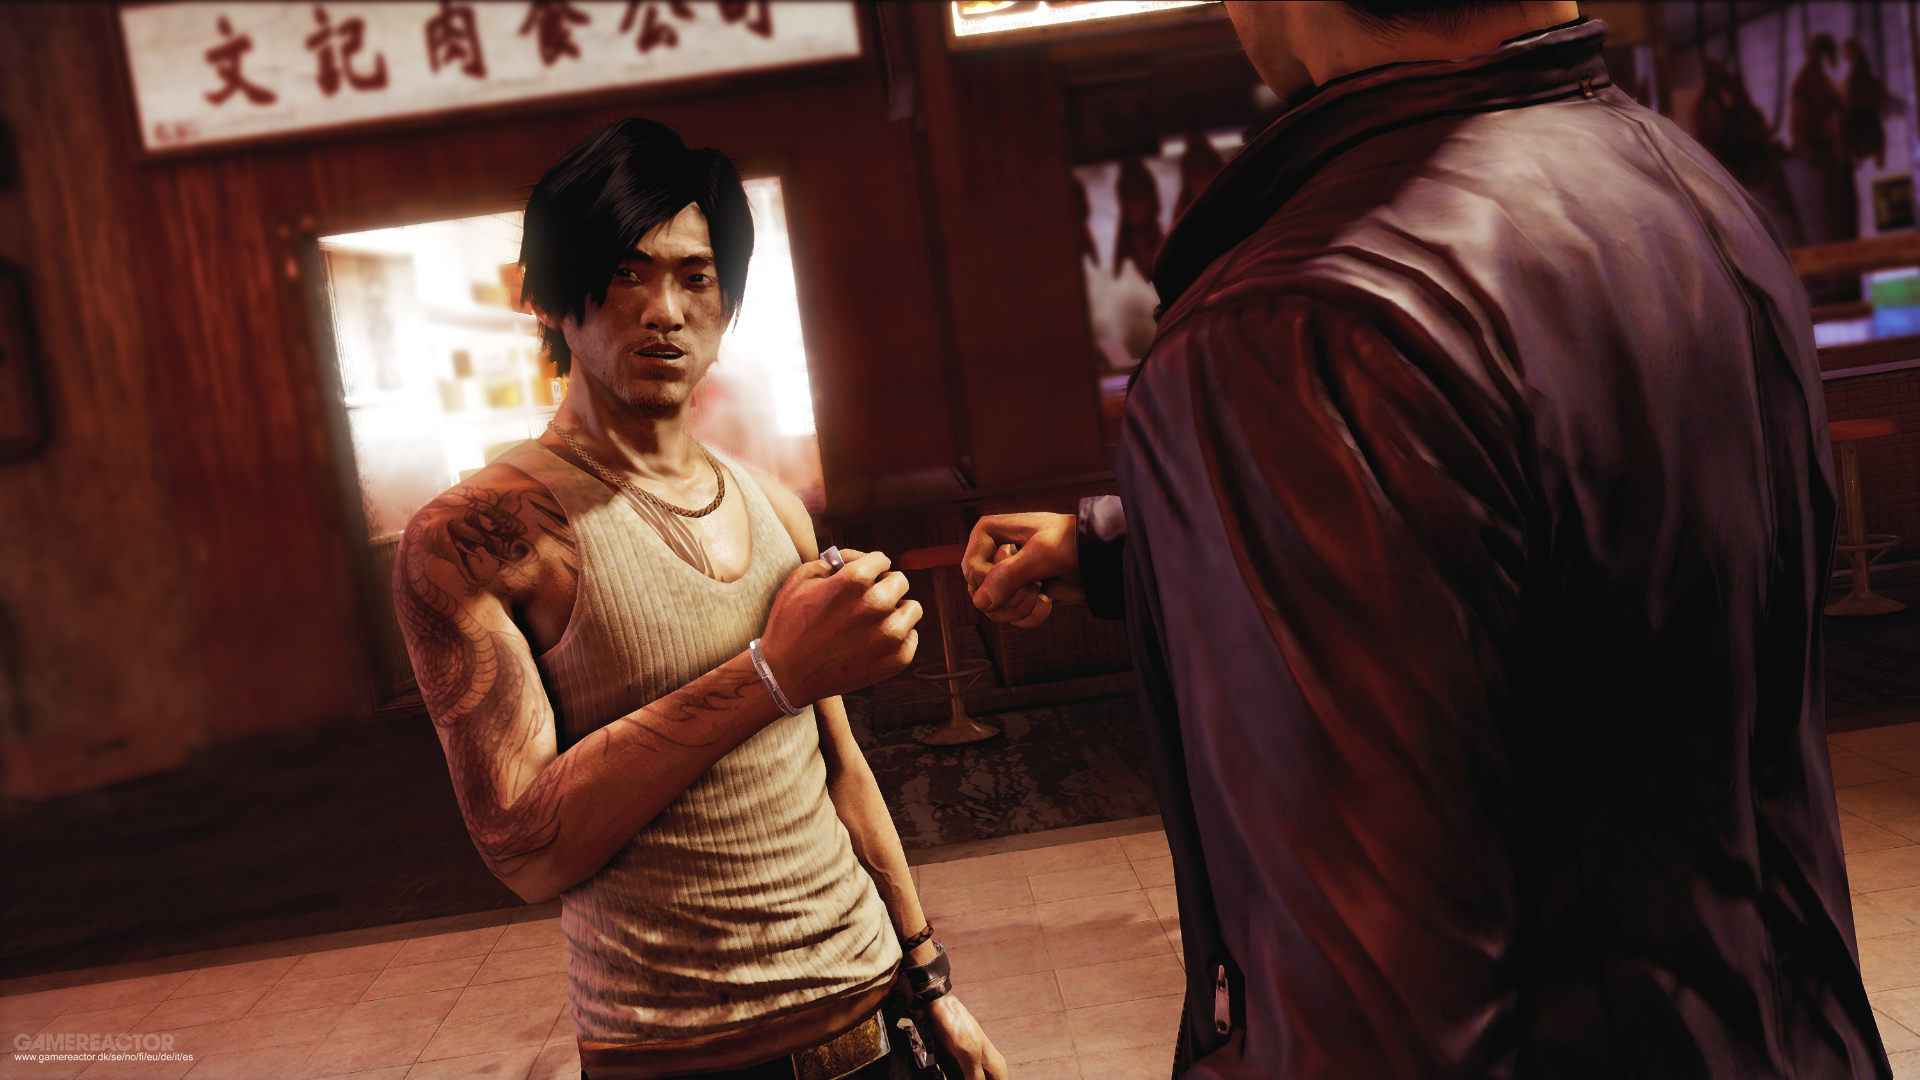 Pictures Of Sleeping Dogs Definitive Edition 2 3 Pc Enlarge Picture